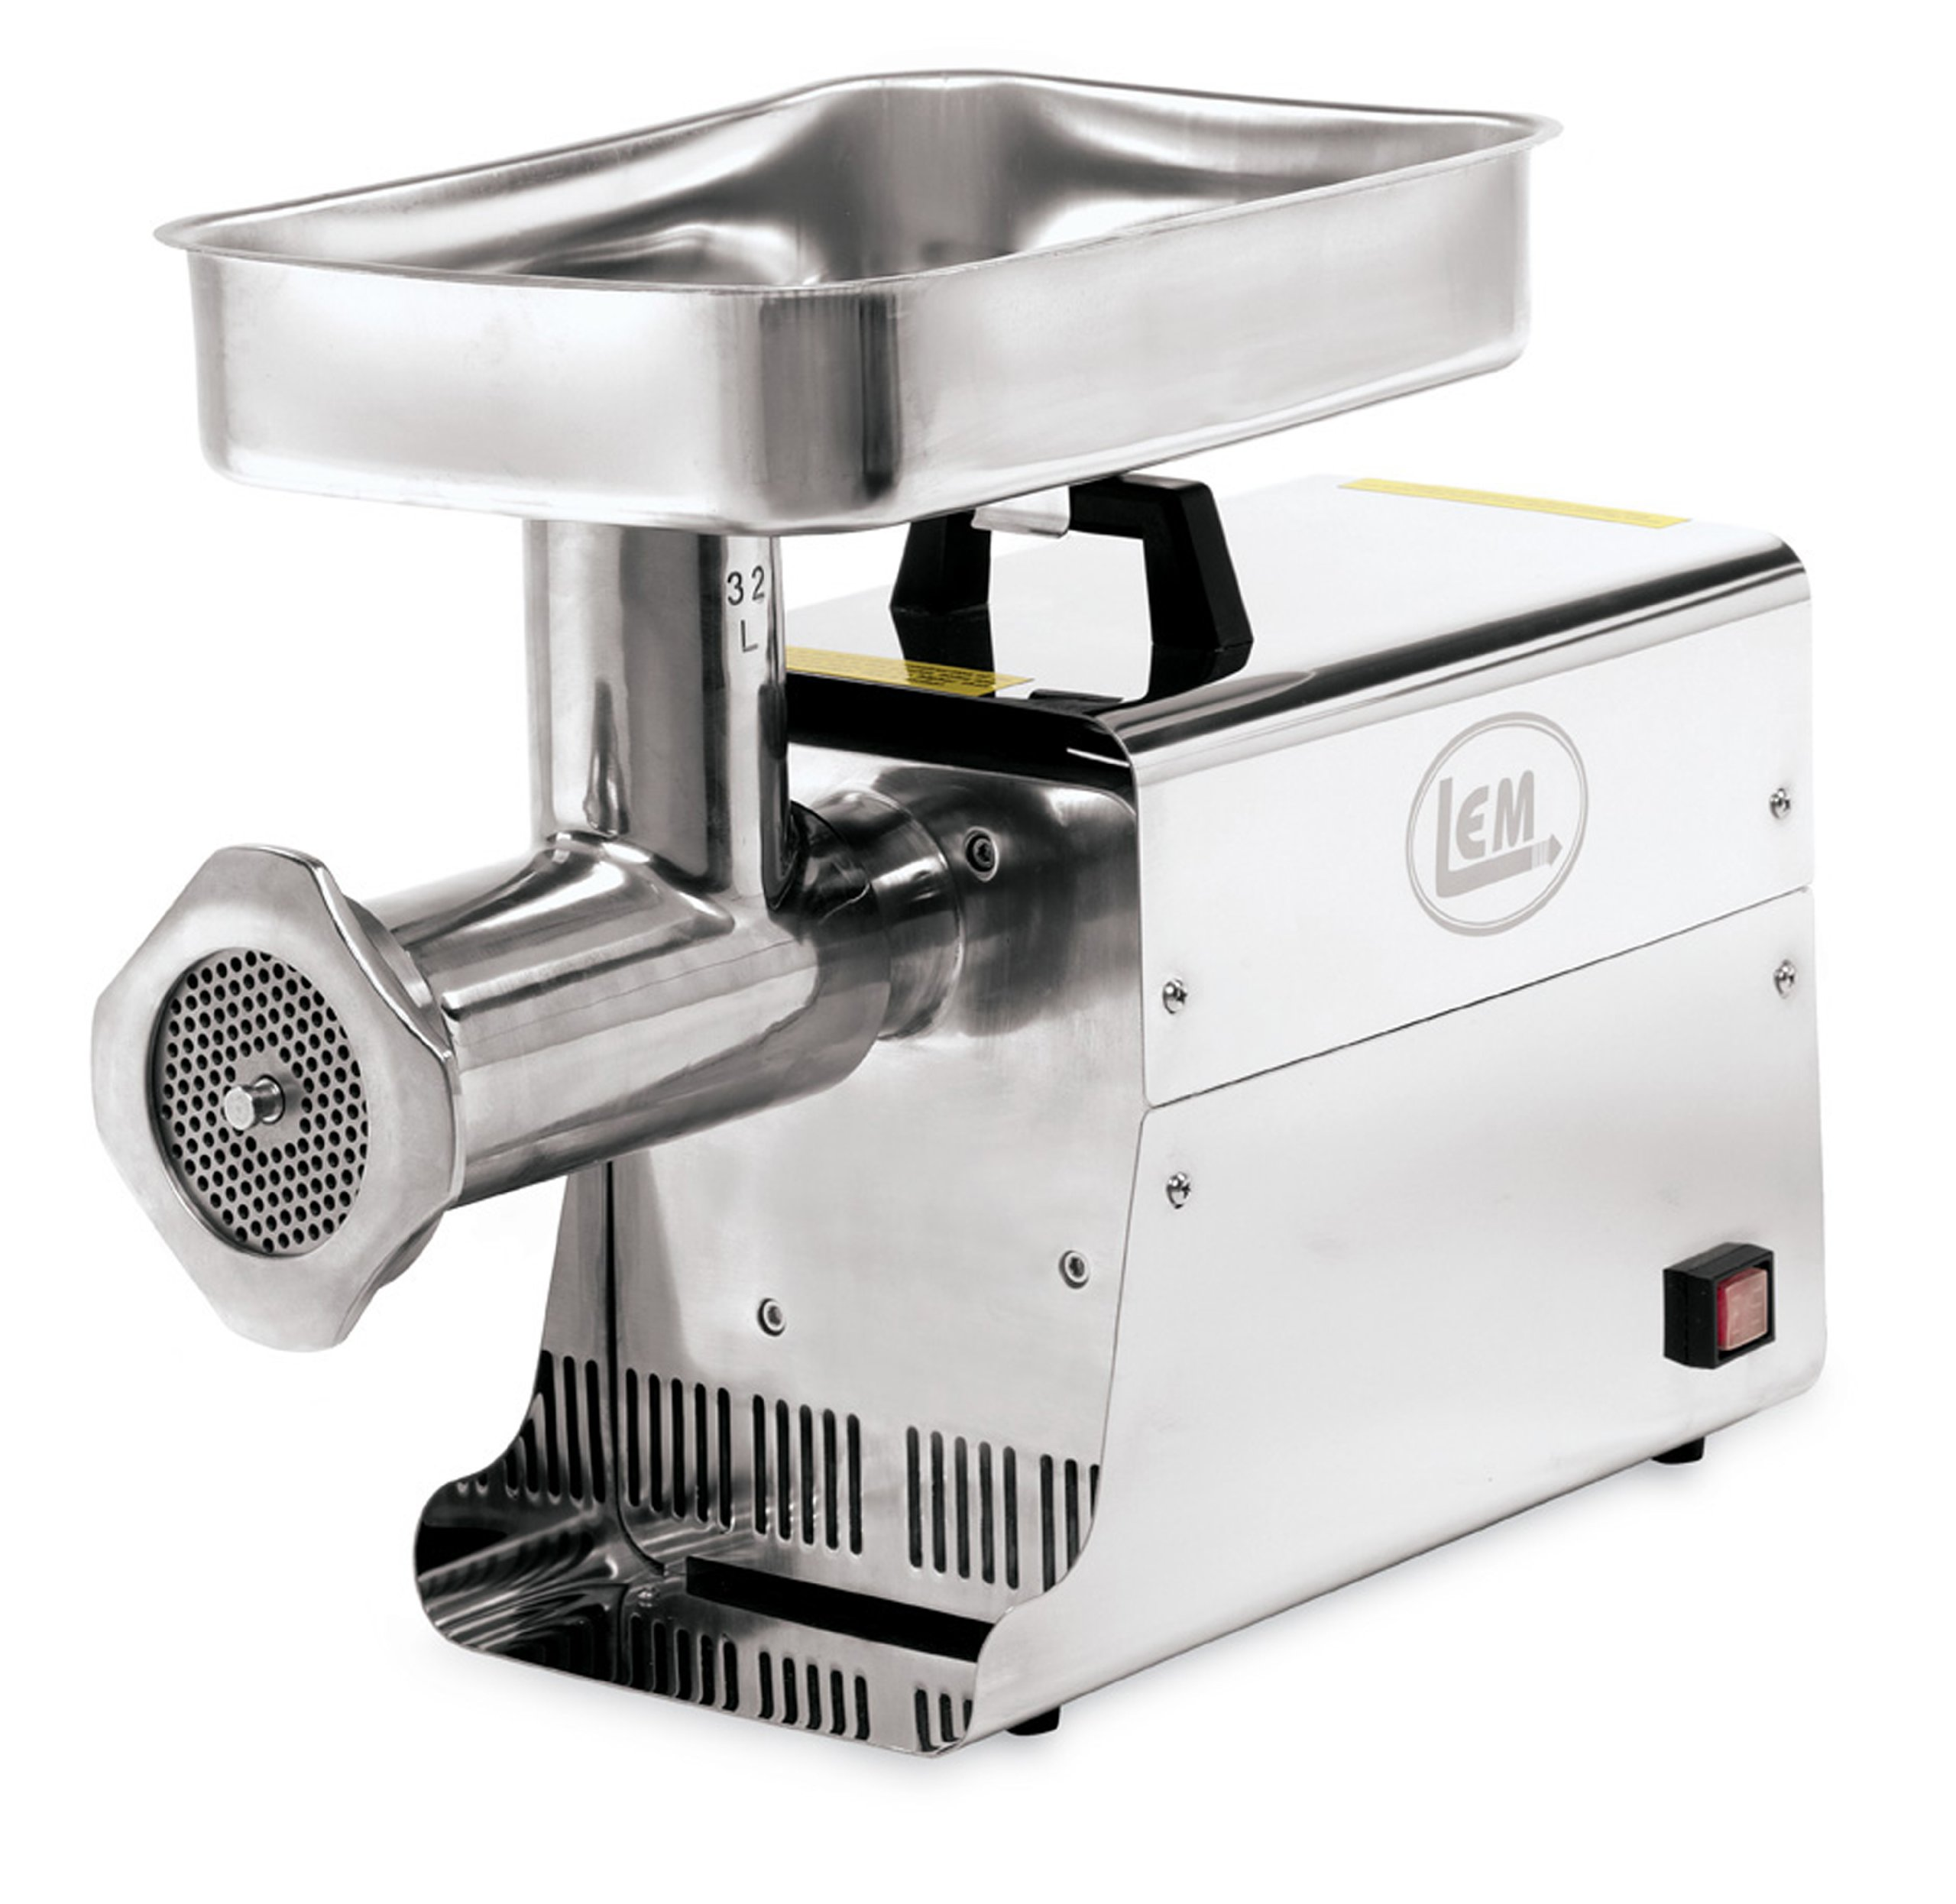 LEM Products 1.5 HP Stainless Steel Electric Meat Grinder by LEM